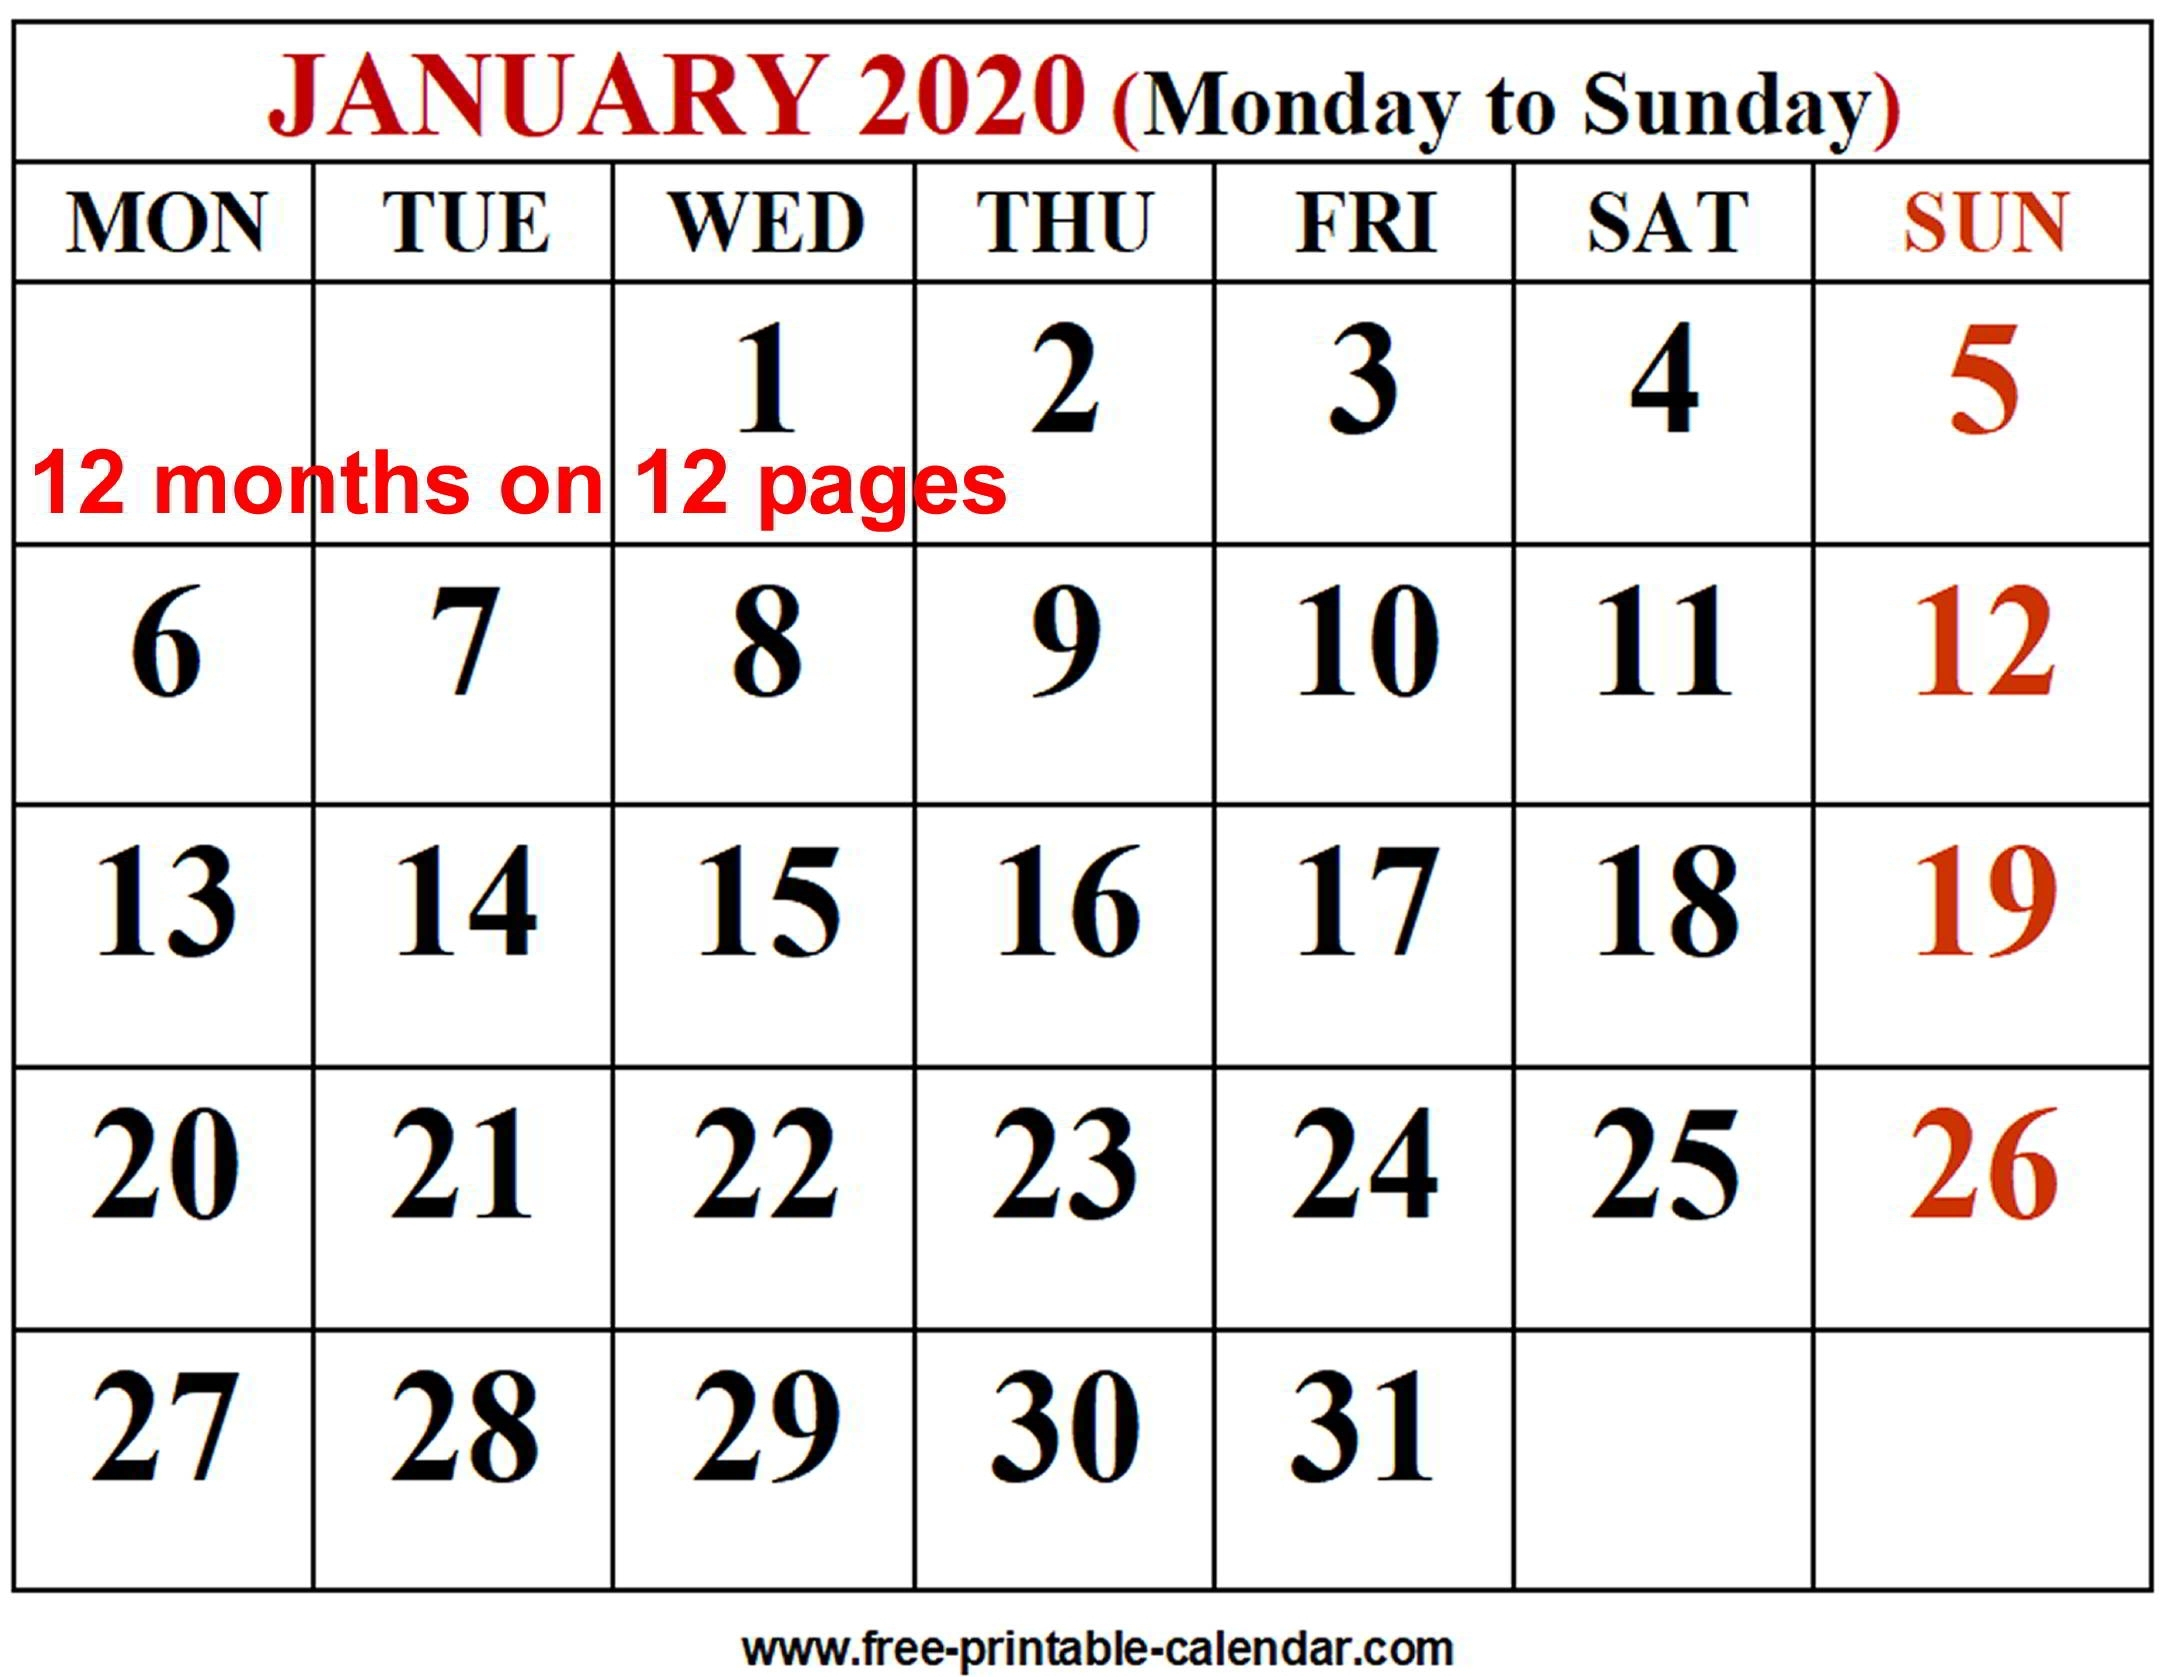 Free Printable Calendar 2020 Monthly 4 Months On A Page regarding 3 Month Printable Calendar 2020